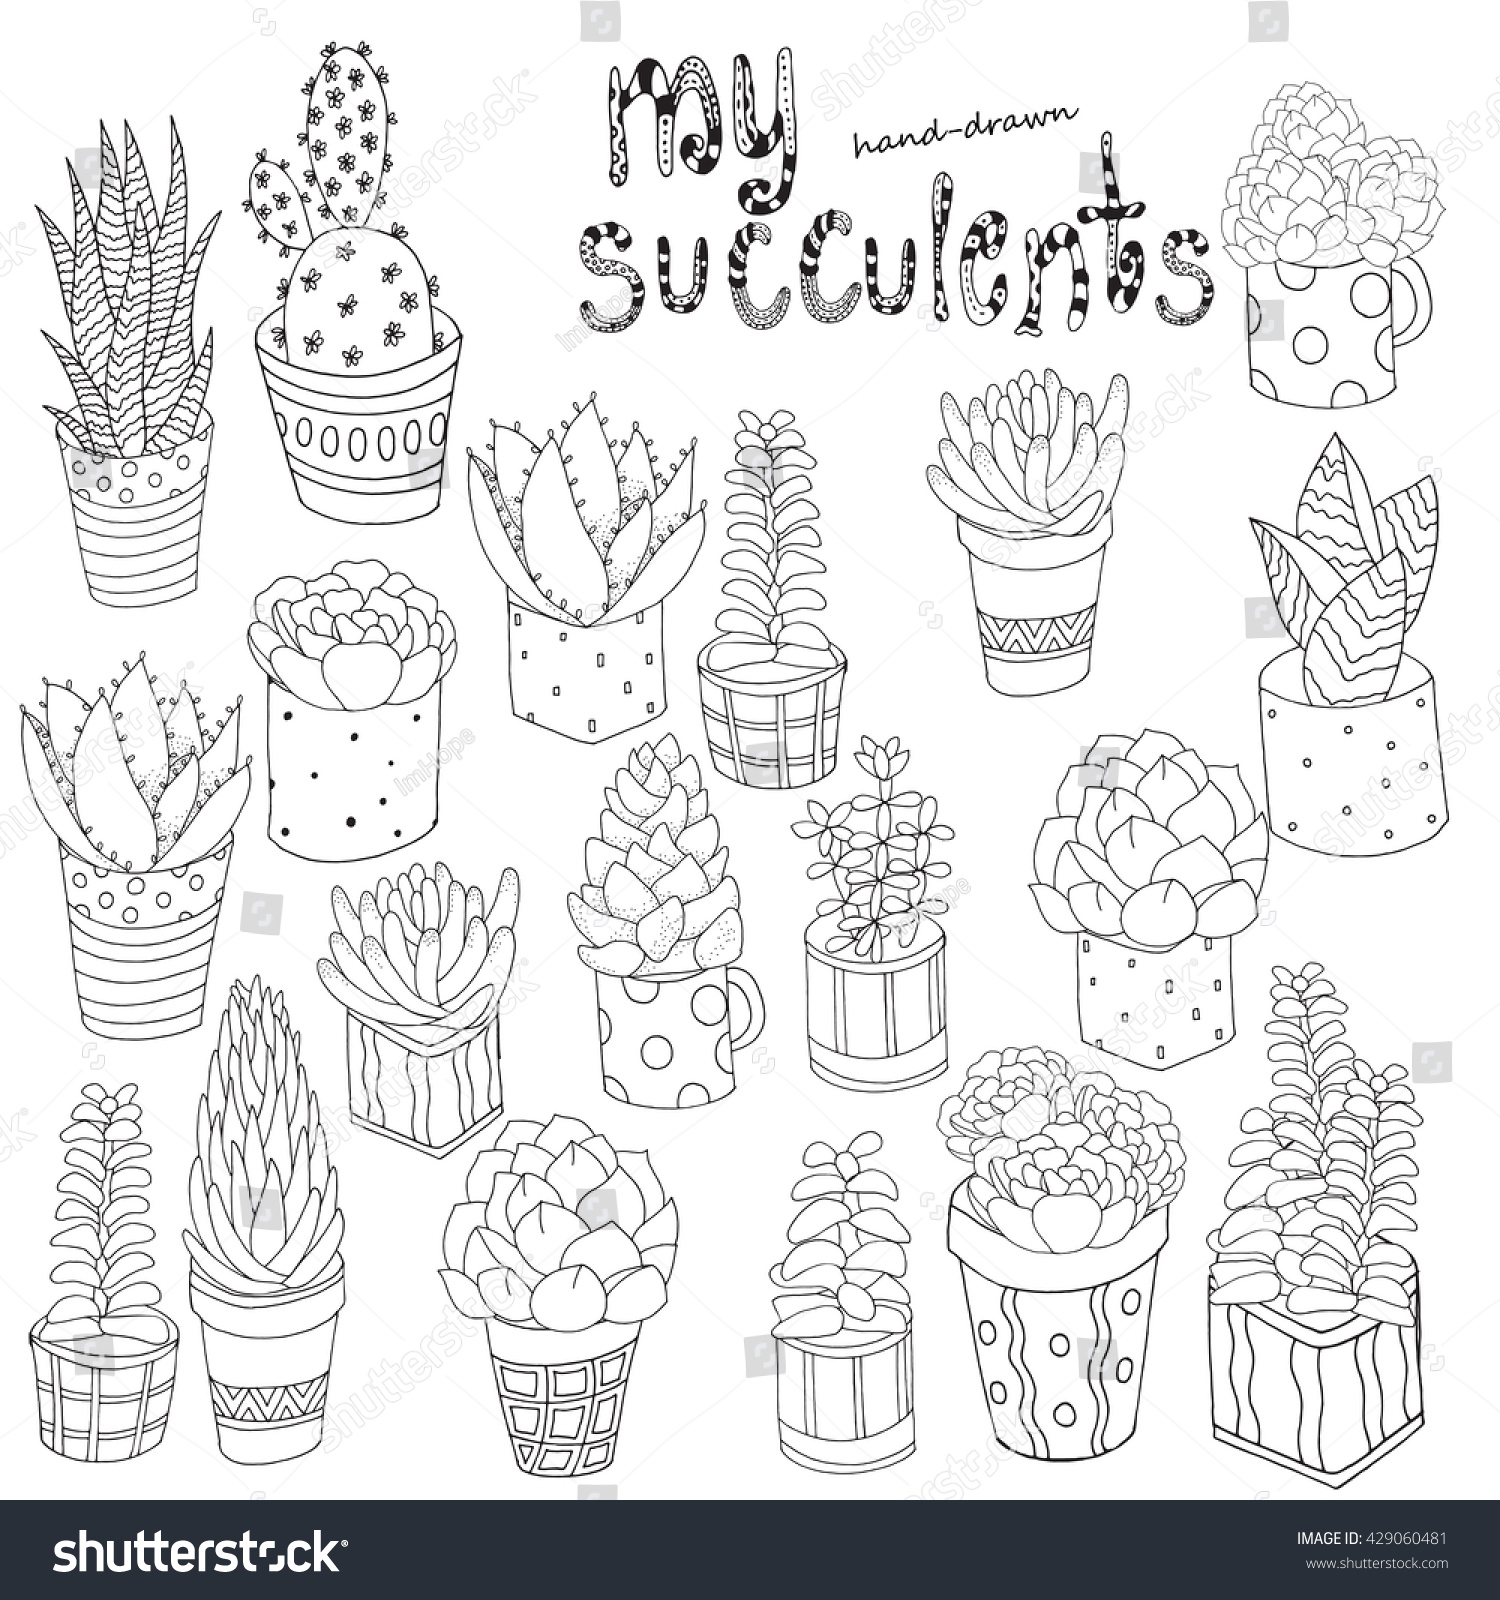 Botanical art coloring book - Hand Drawn Set Of Succulents Cactuses And Pots Doodles Elements Black And White